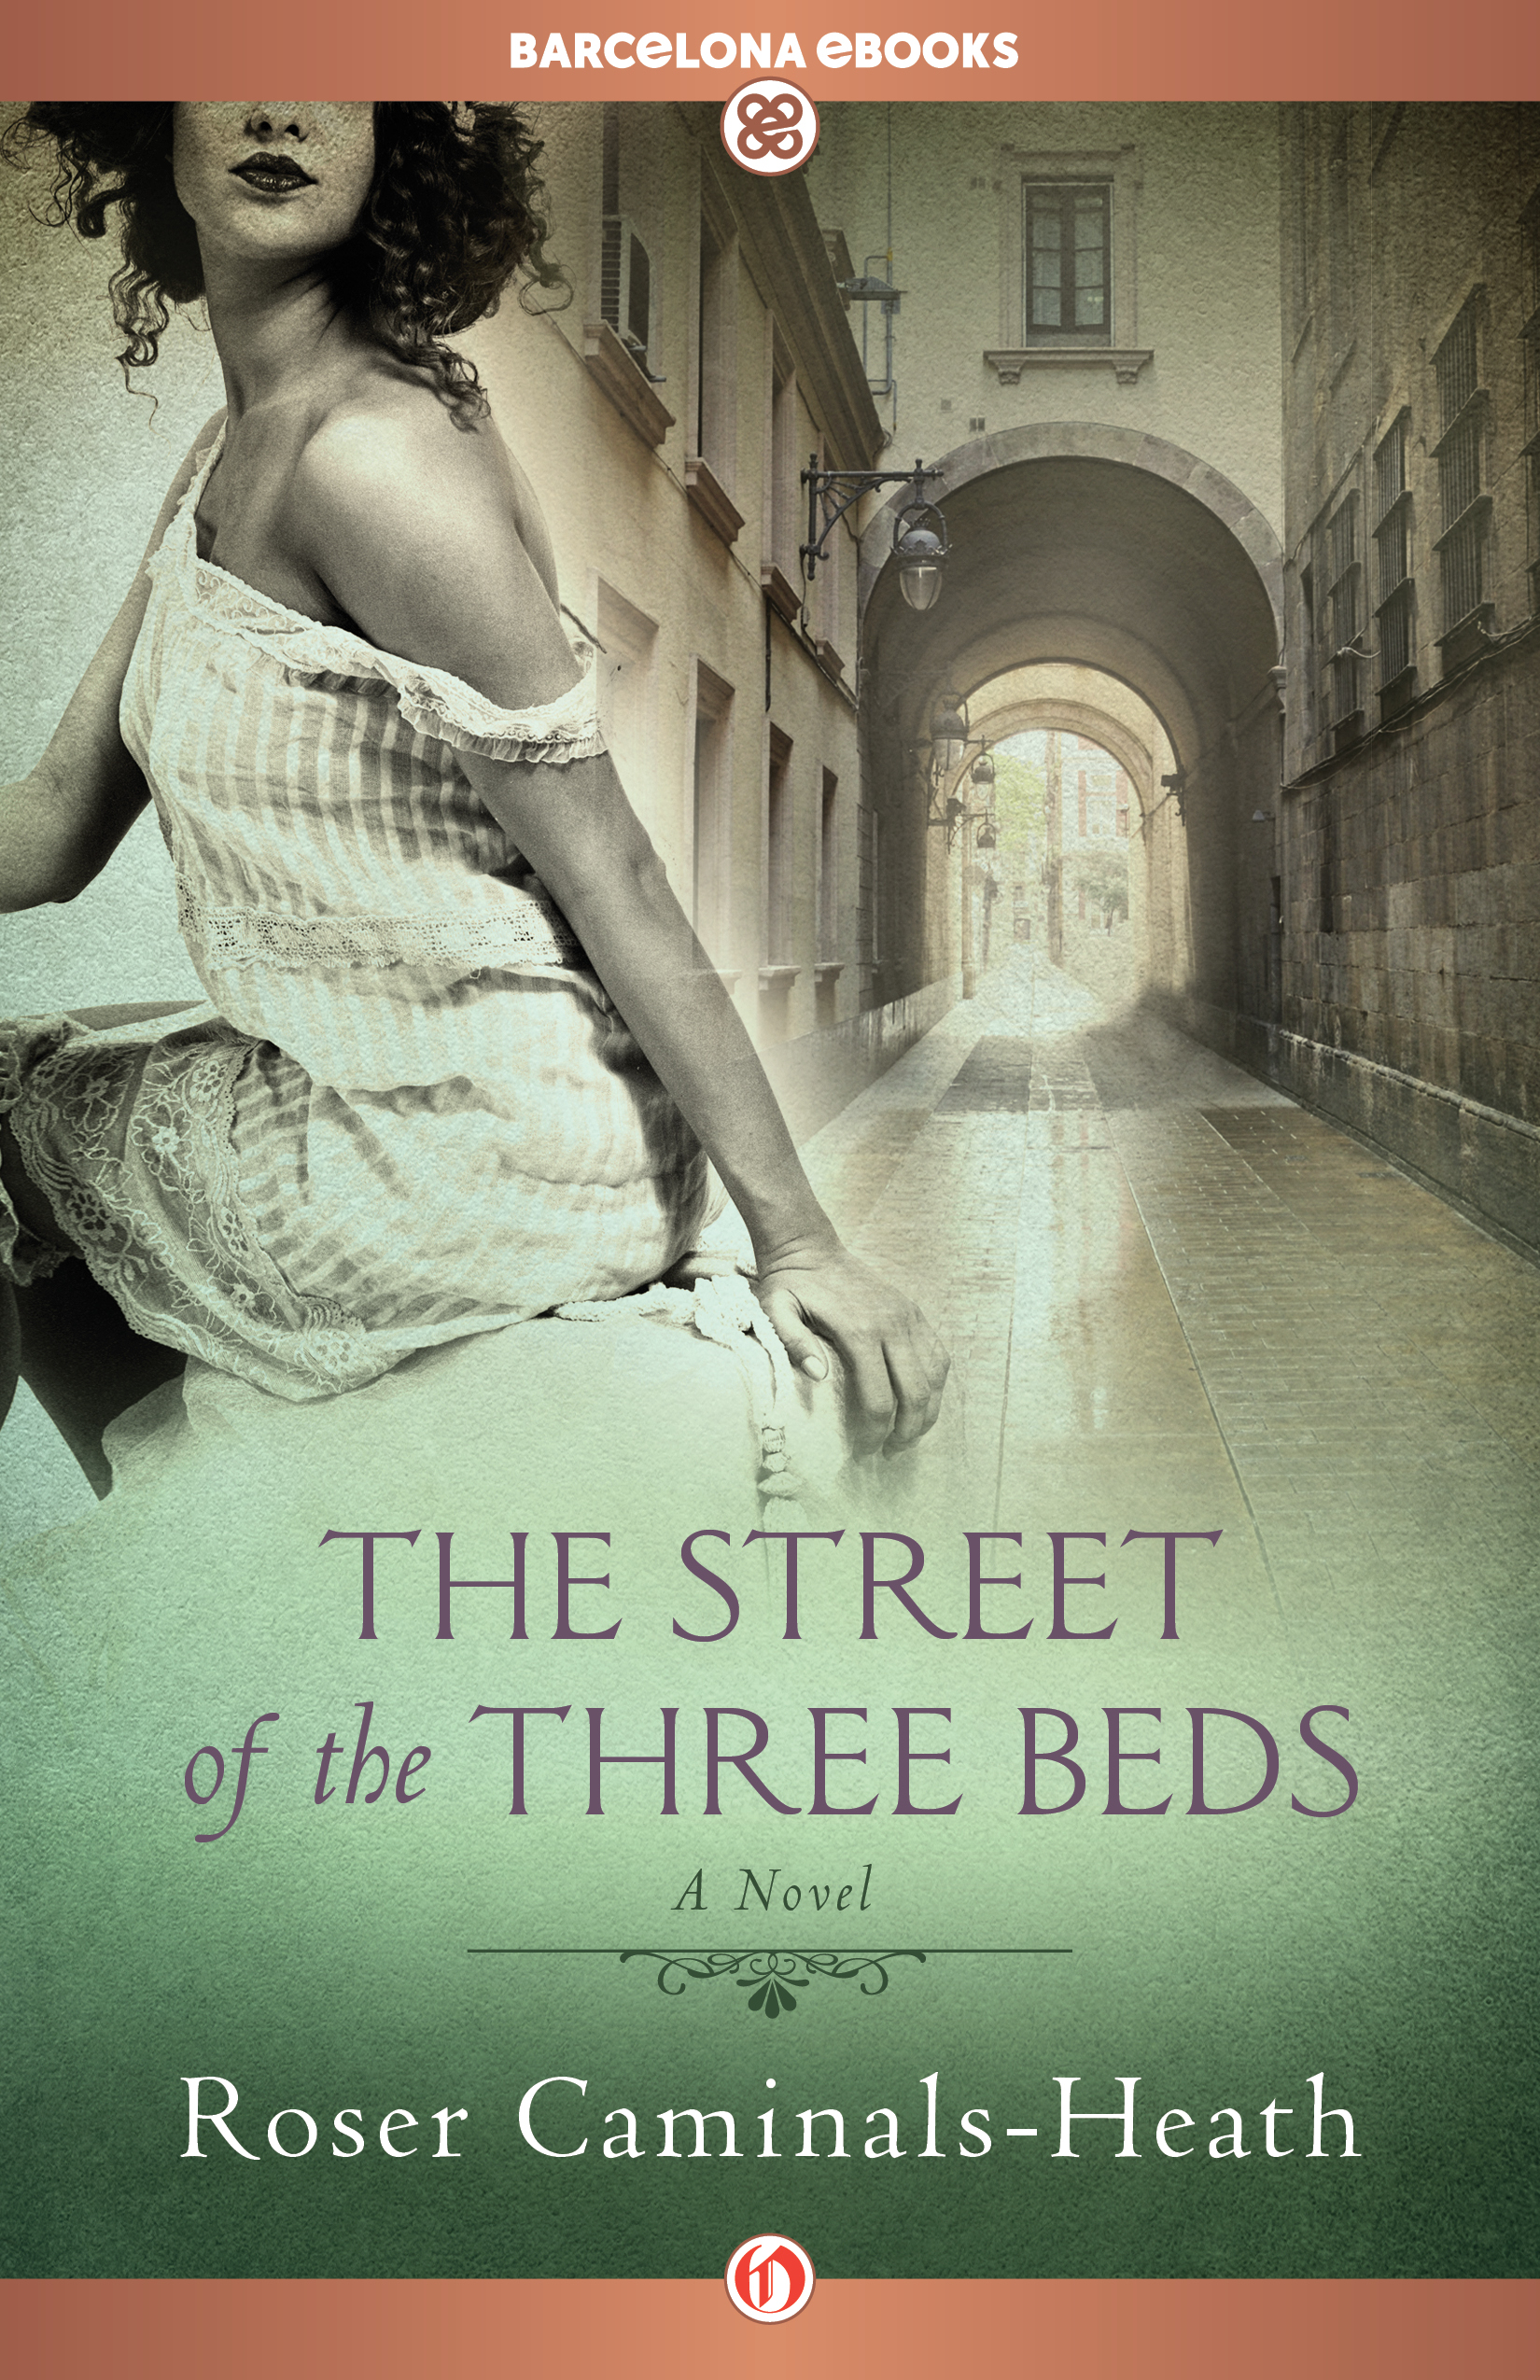 The Street of the Three Beds